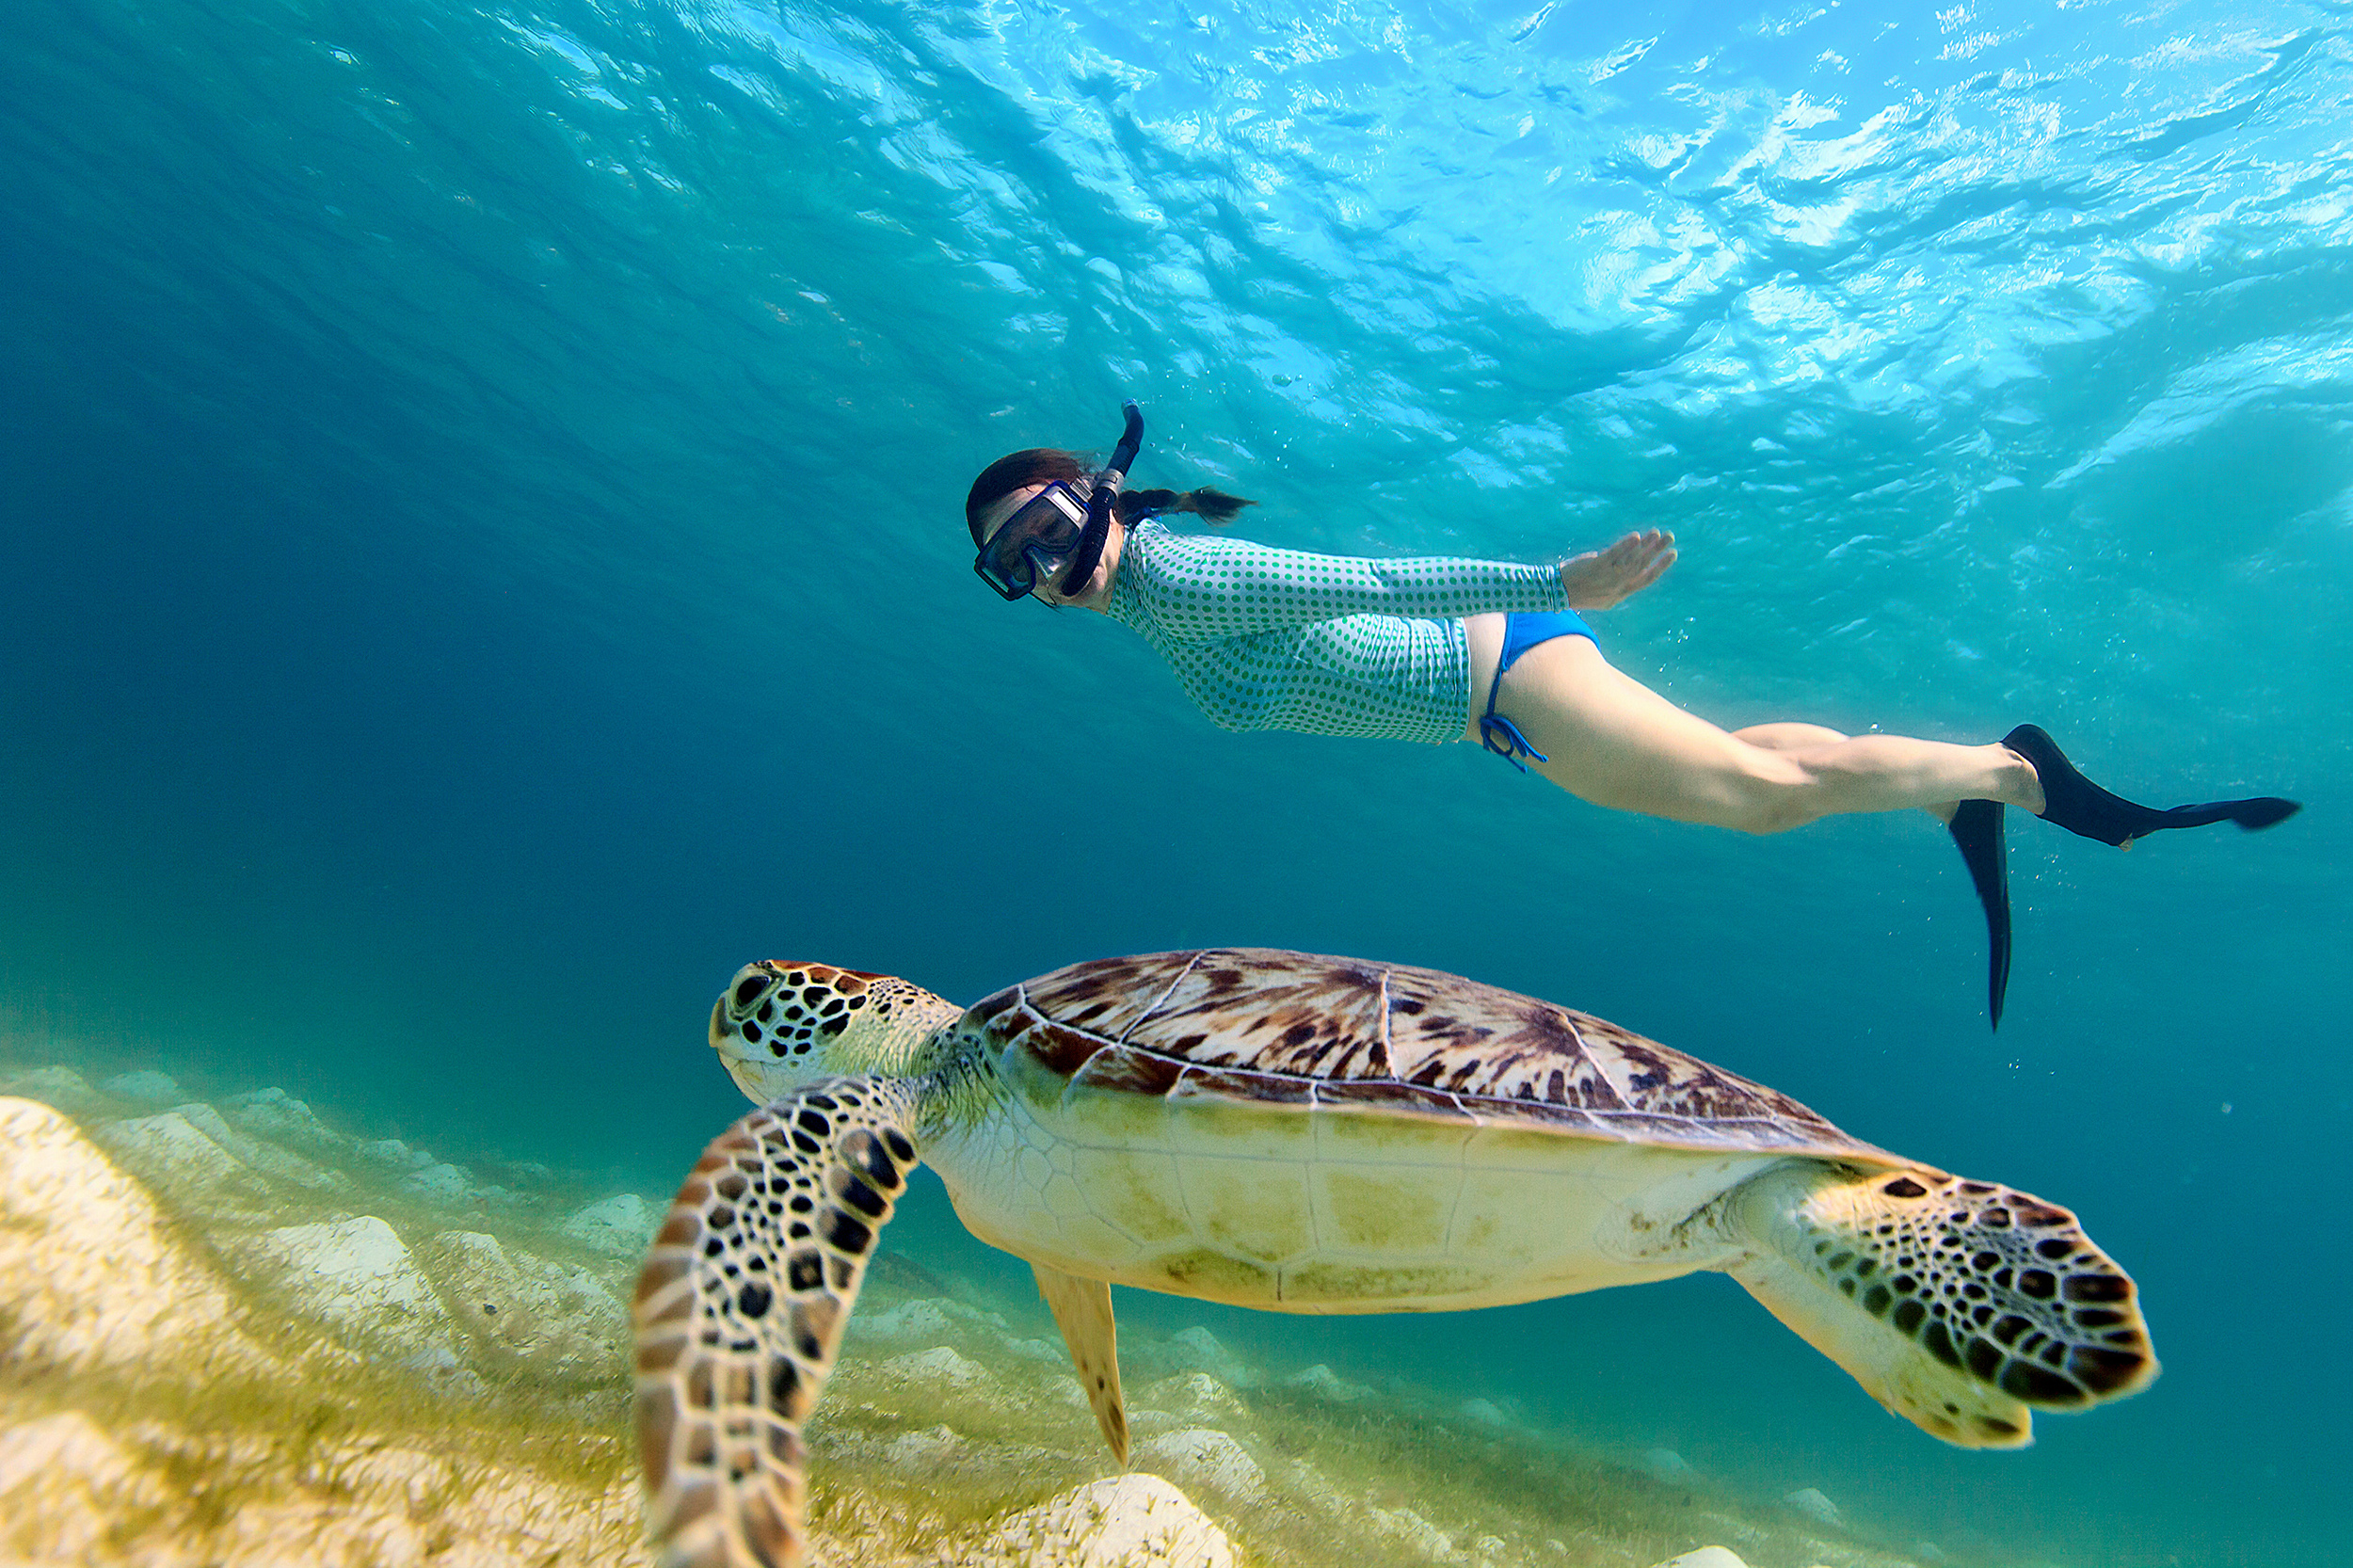 beginner s guide to snorkeling how not to look like an idiot